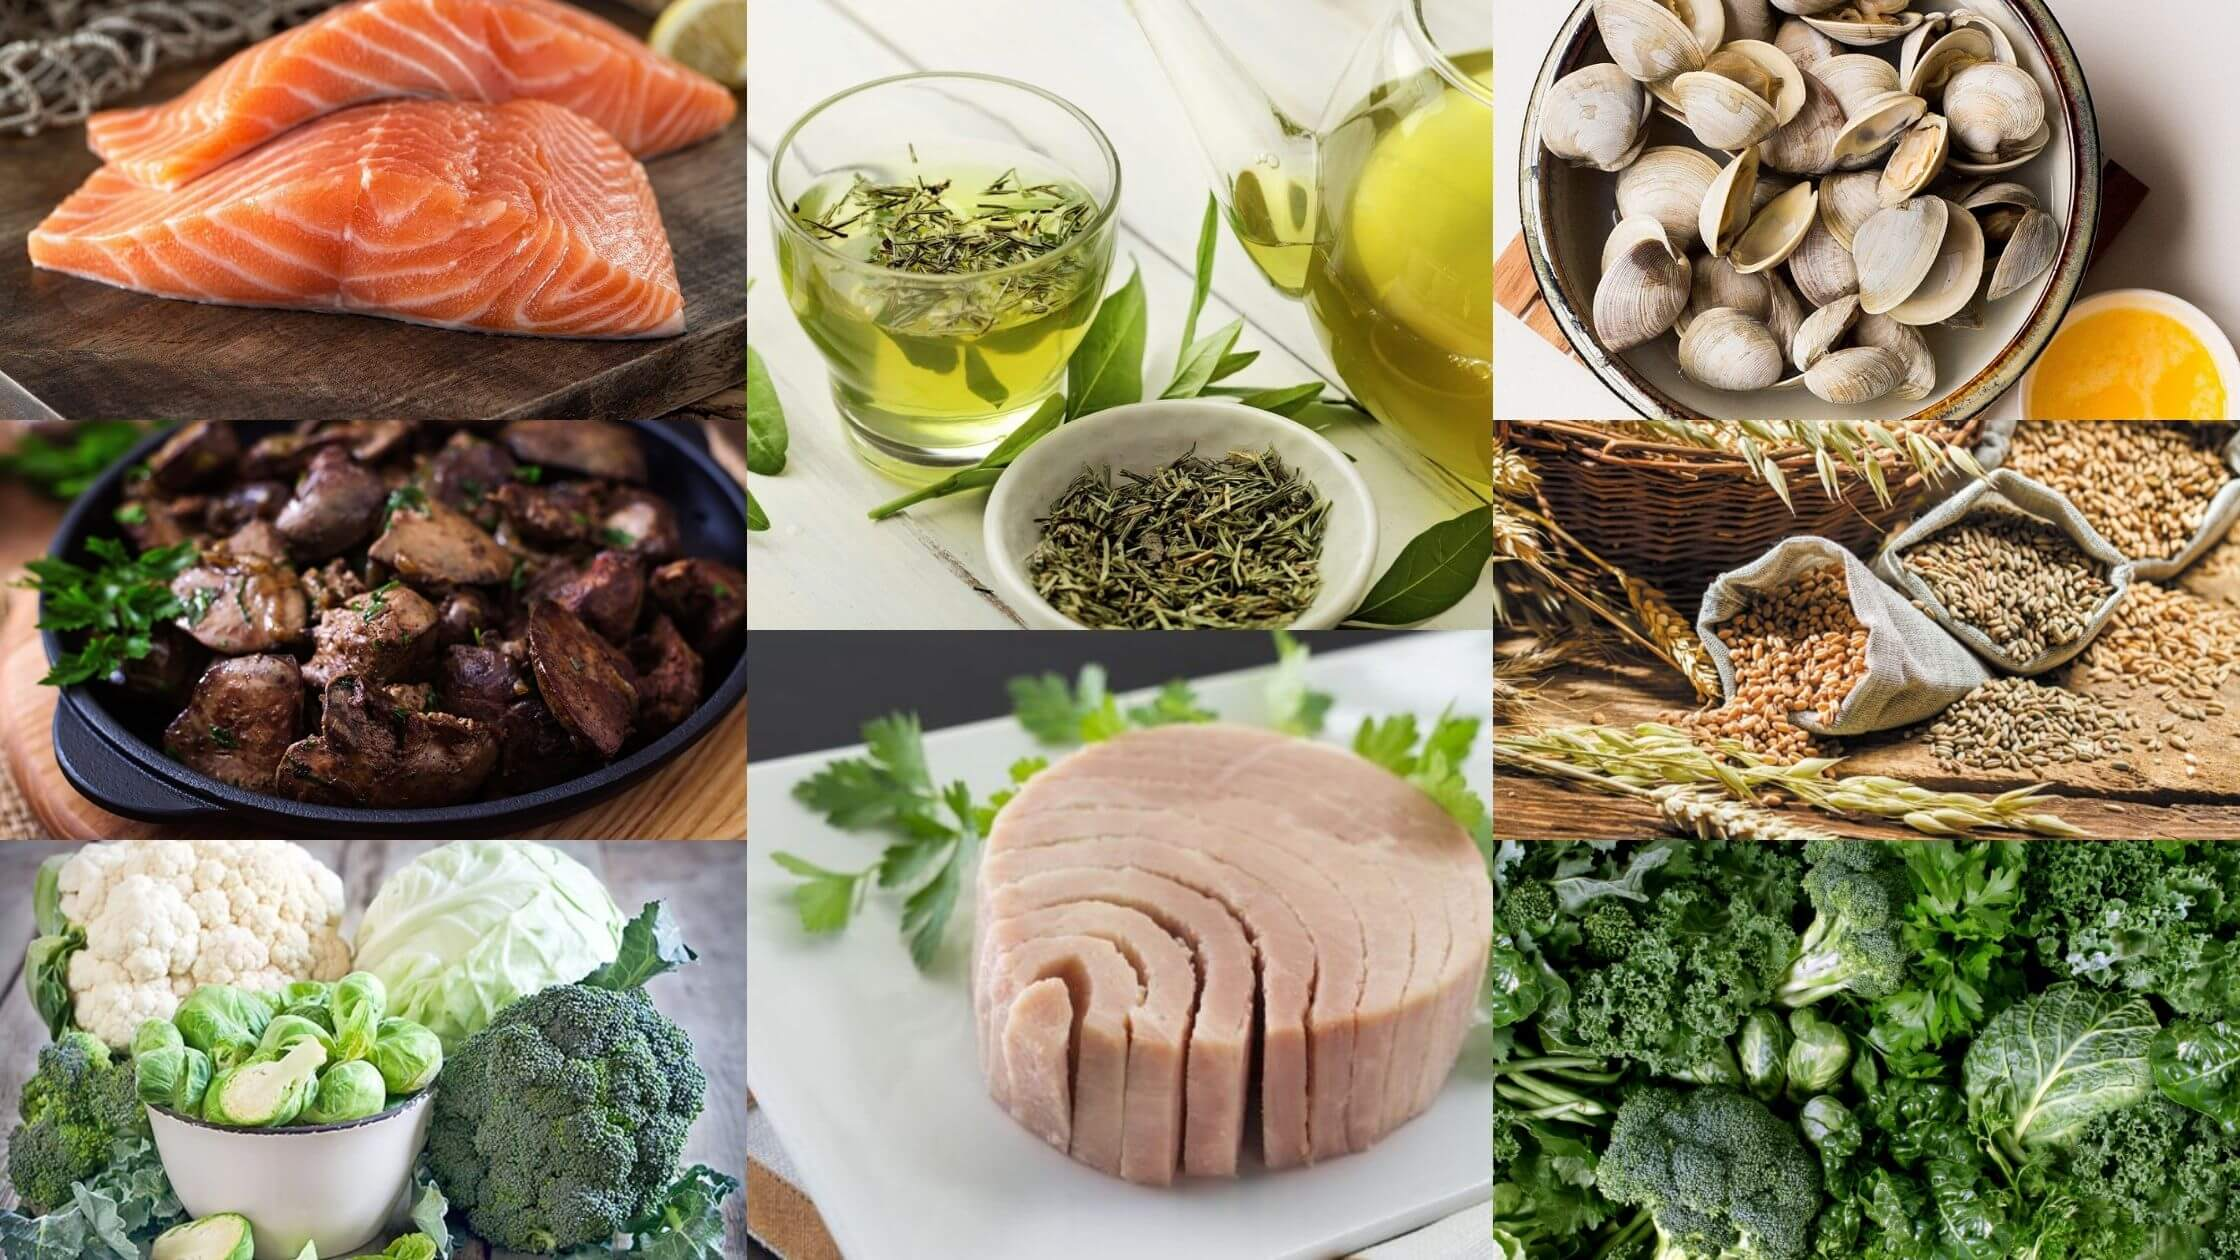 Foods High in Vitamins for Weight Loss